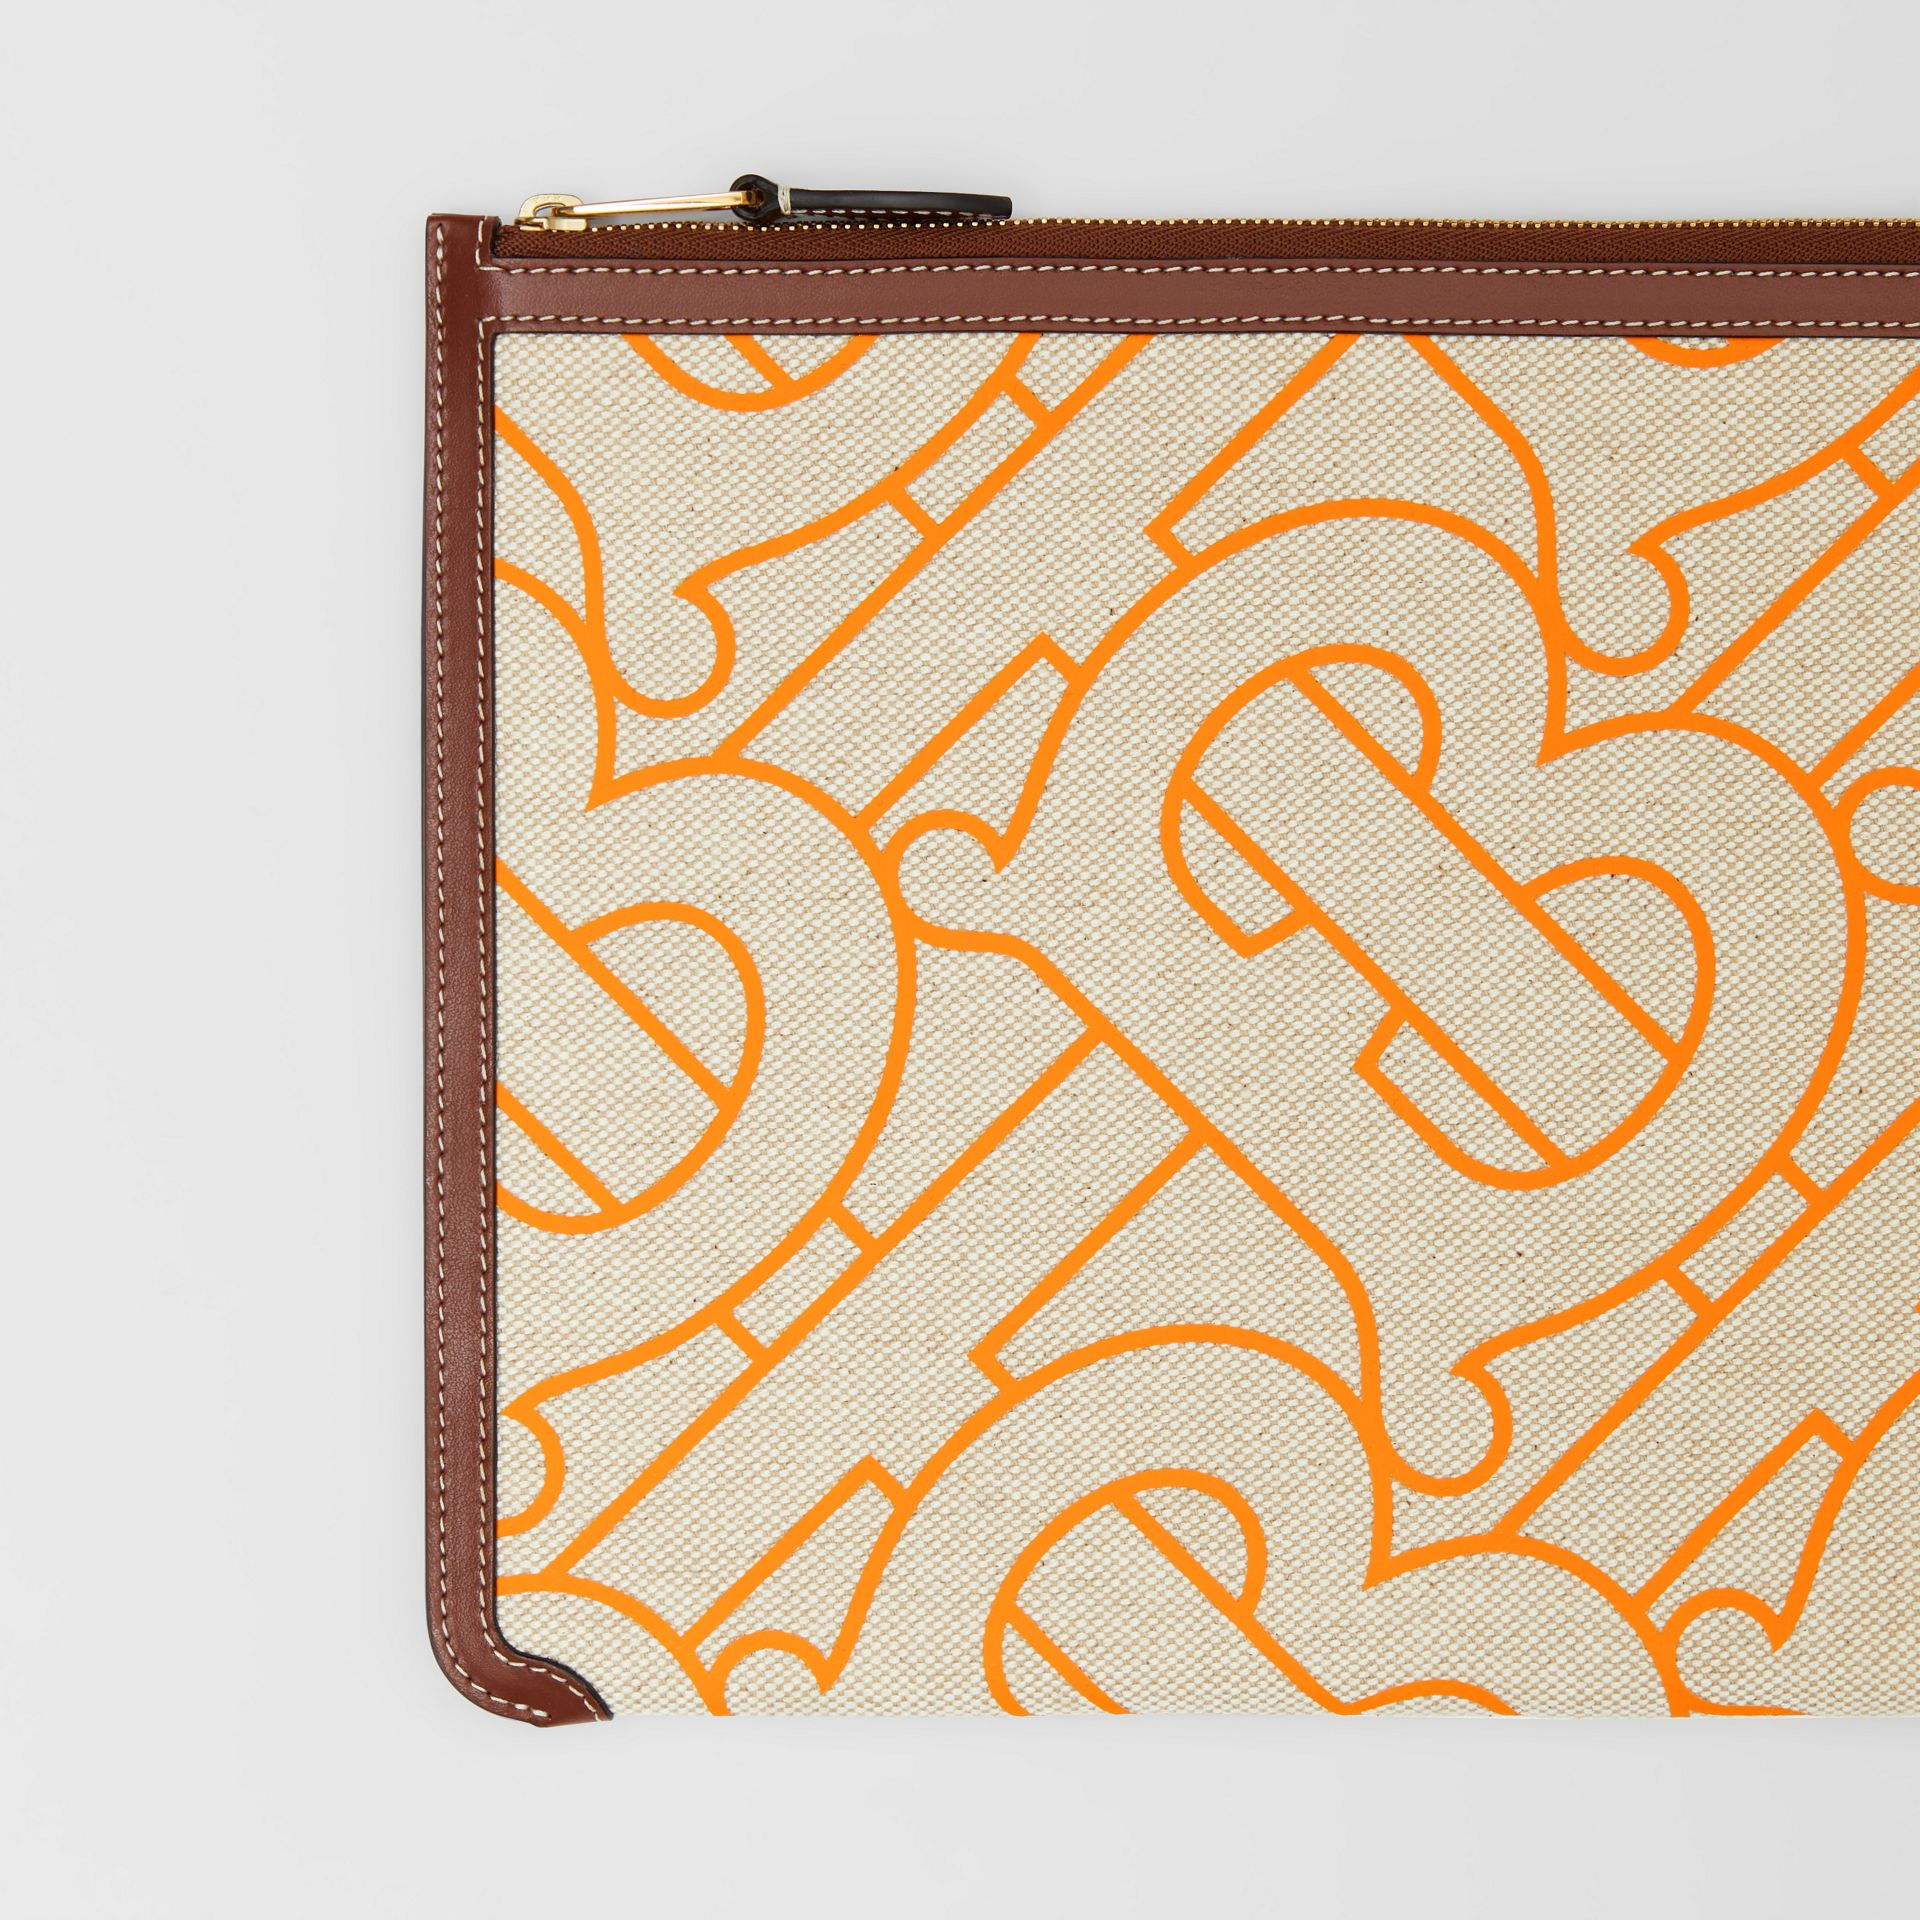 Monogram Motif Canvas and Leather Pouch in Natural/orange - Women | Burberry United States - gallery image 1